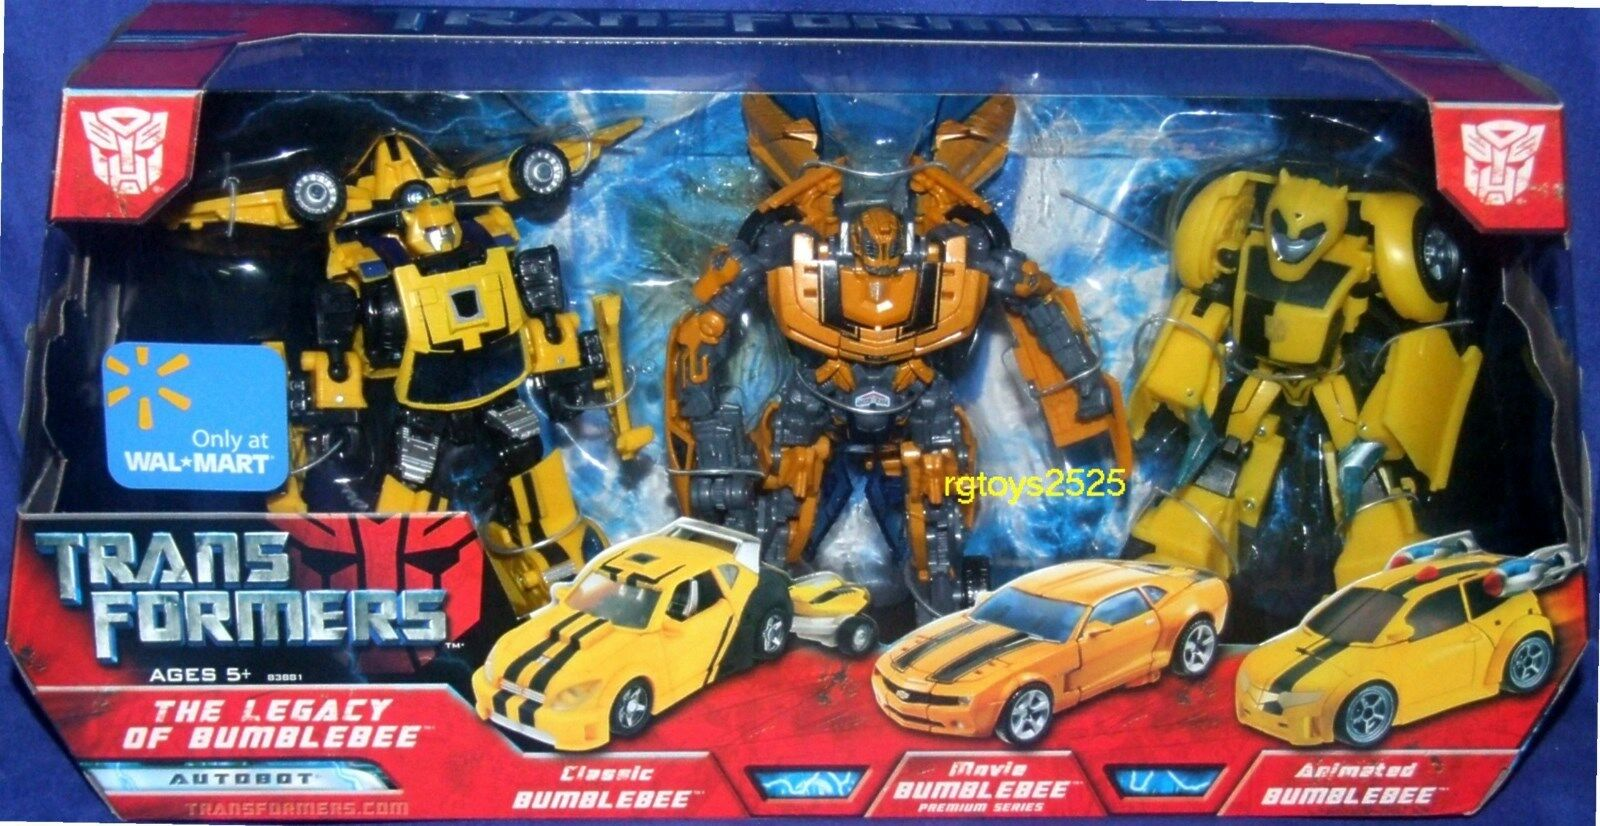 Transformers The Legacy of Bumblebee 6  Walmart Exclusive 3 Figure Set New Movie